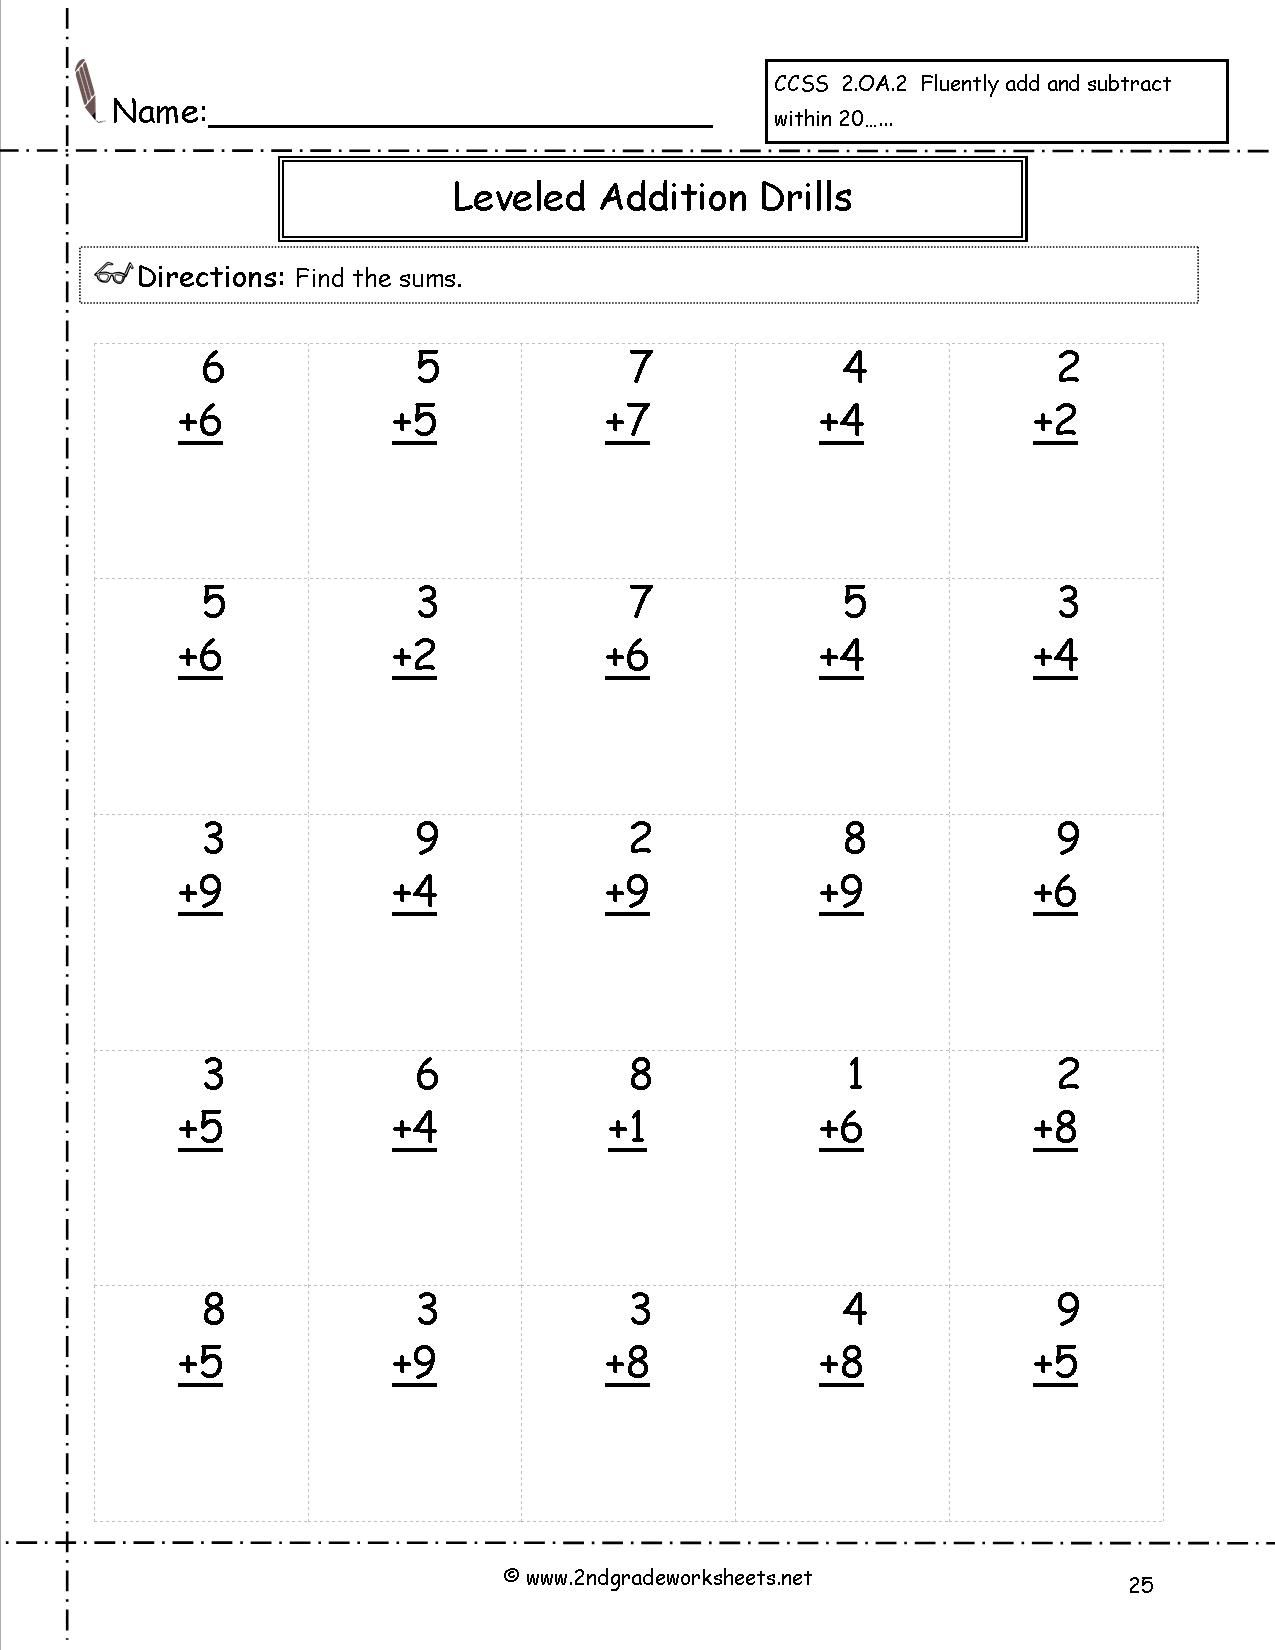 43 Stunning Addition Worksheets Ideas 2nd Grade Math Worksheets